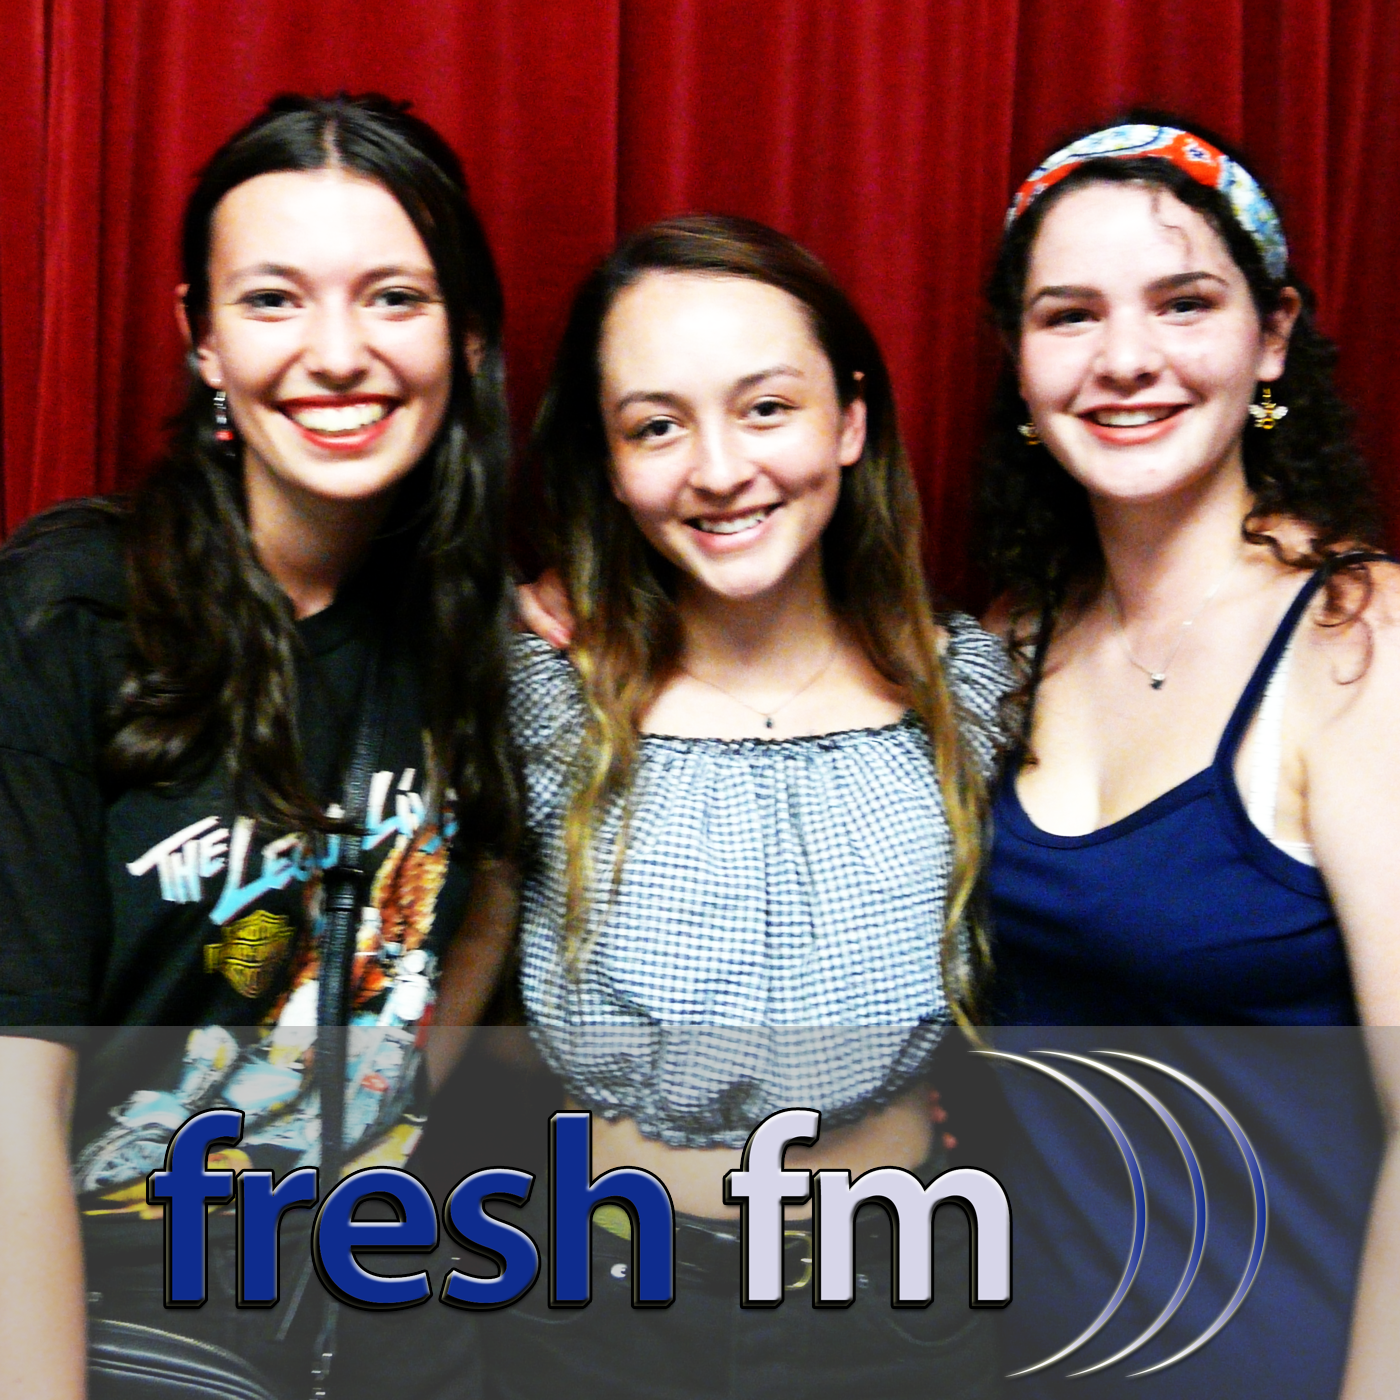 https://cdn.accessradio.org/StationFolder/freshfm/Images/Dinner-Club---Ani-Scarlett-and-Caitlin.png